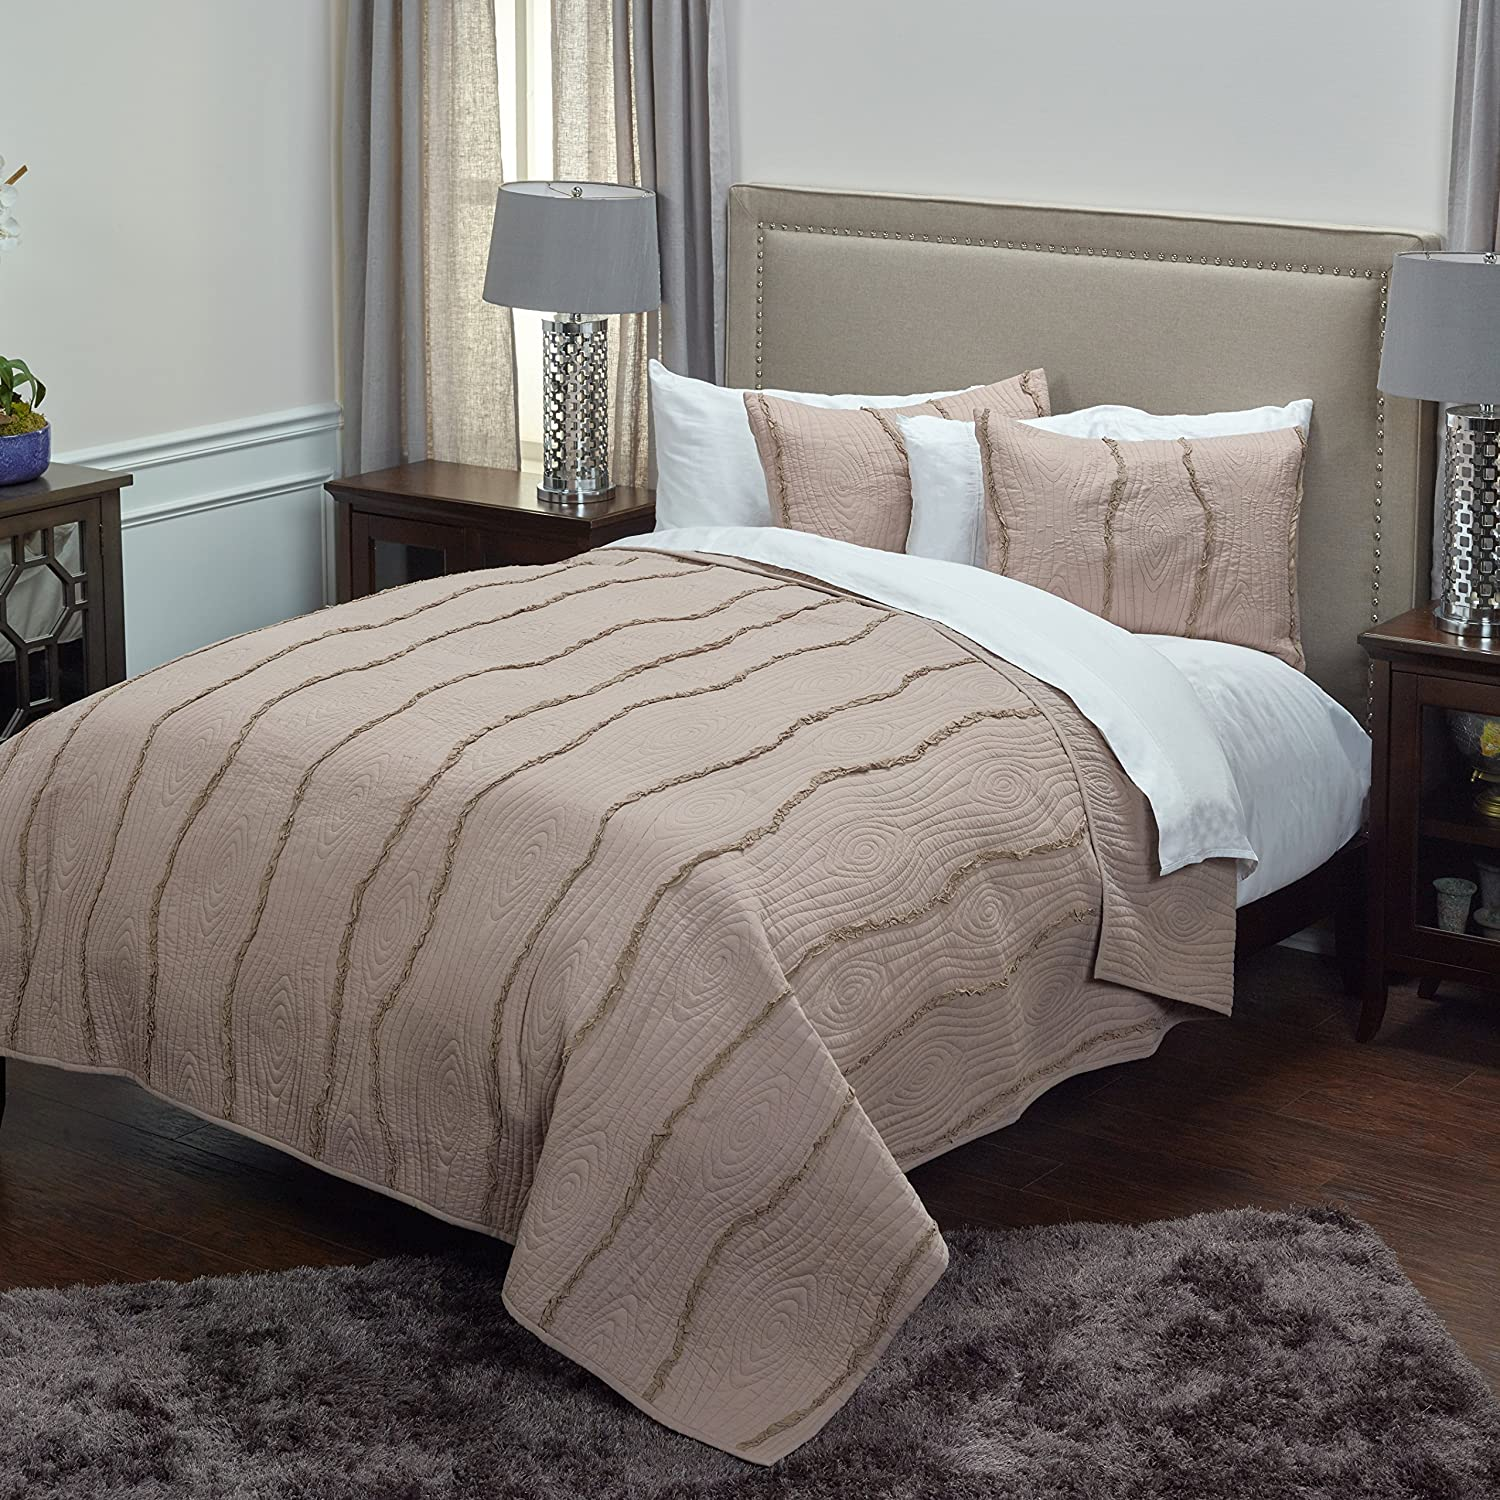 Rizzy Home BT3067 Quilt, 90